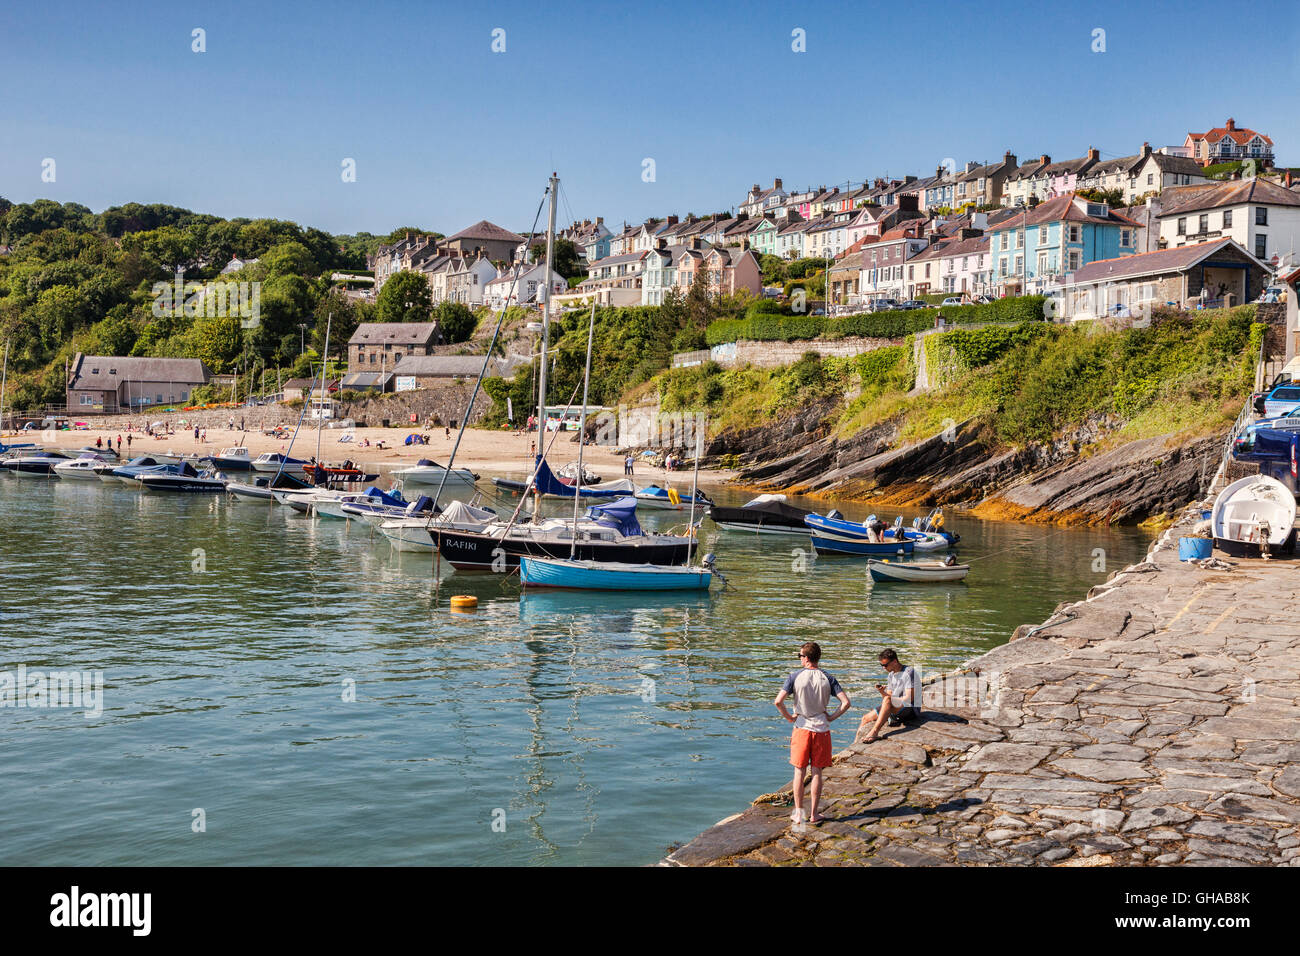 South Beach, New Quay, Ceredigion, Wales, UK - Stock Image